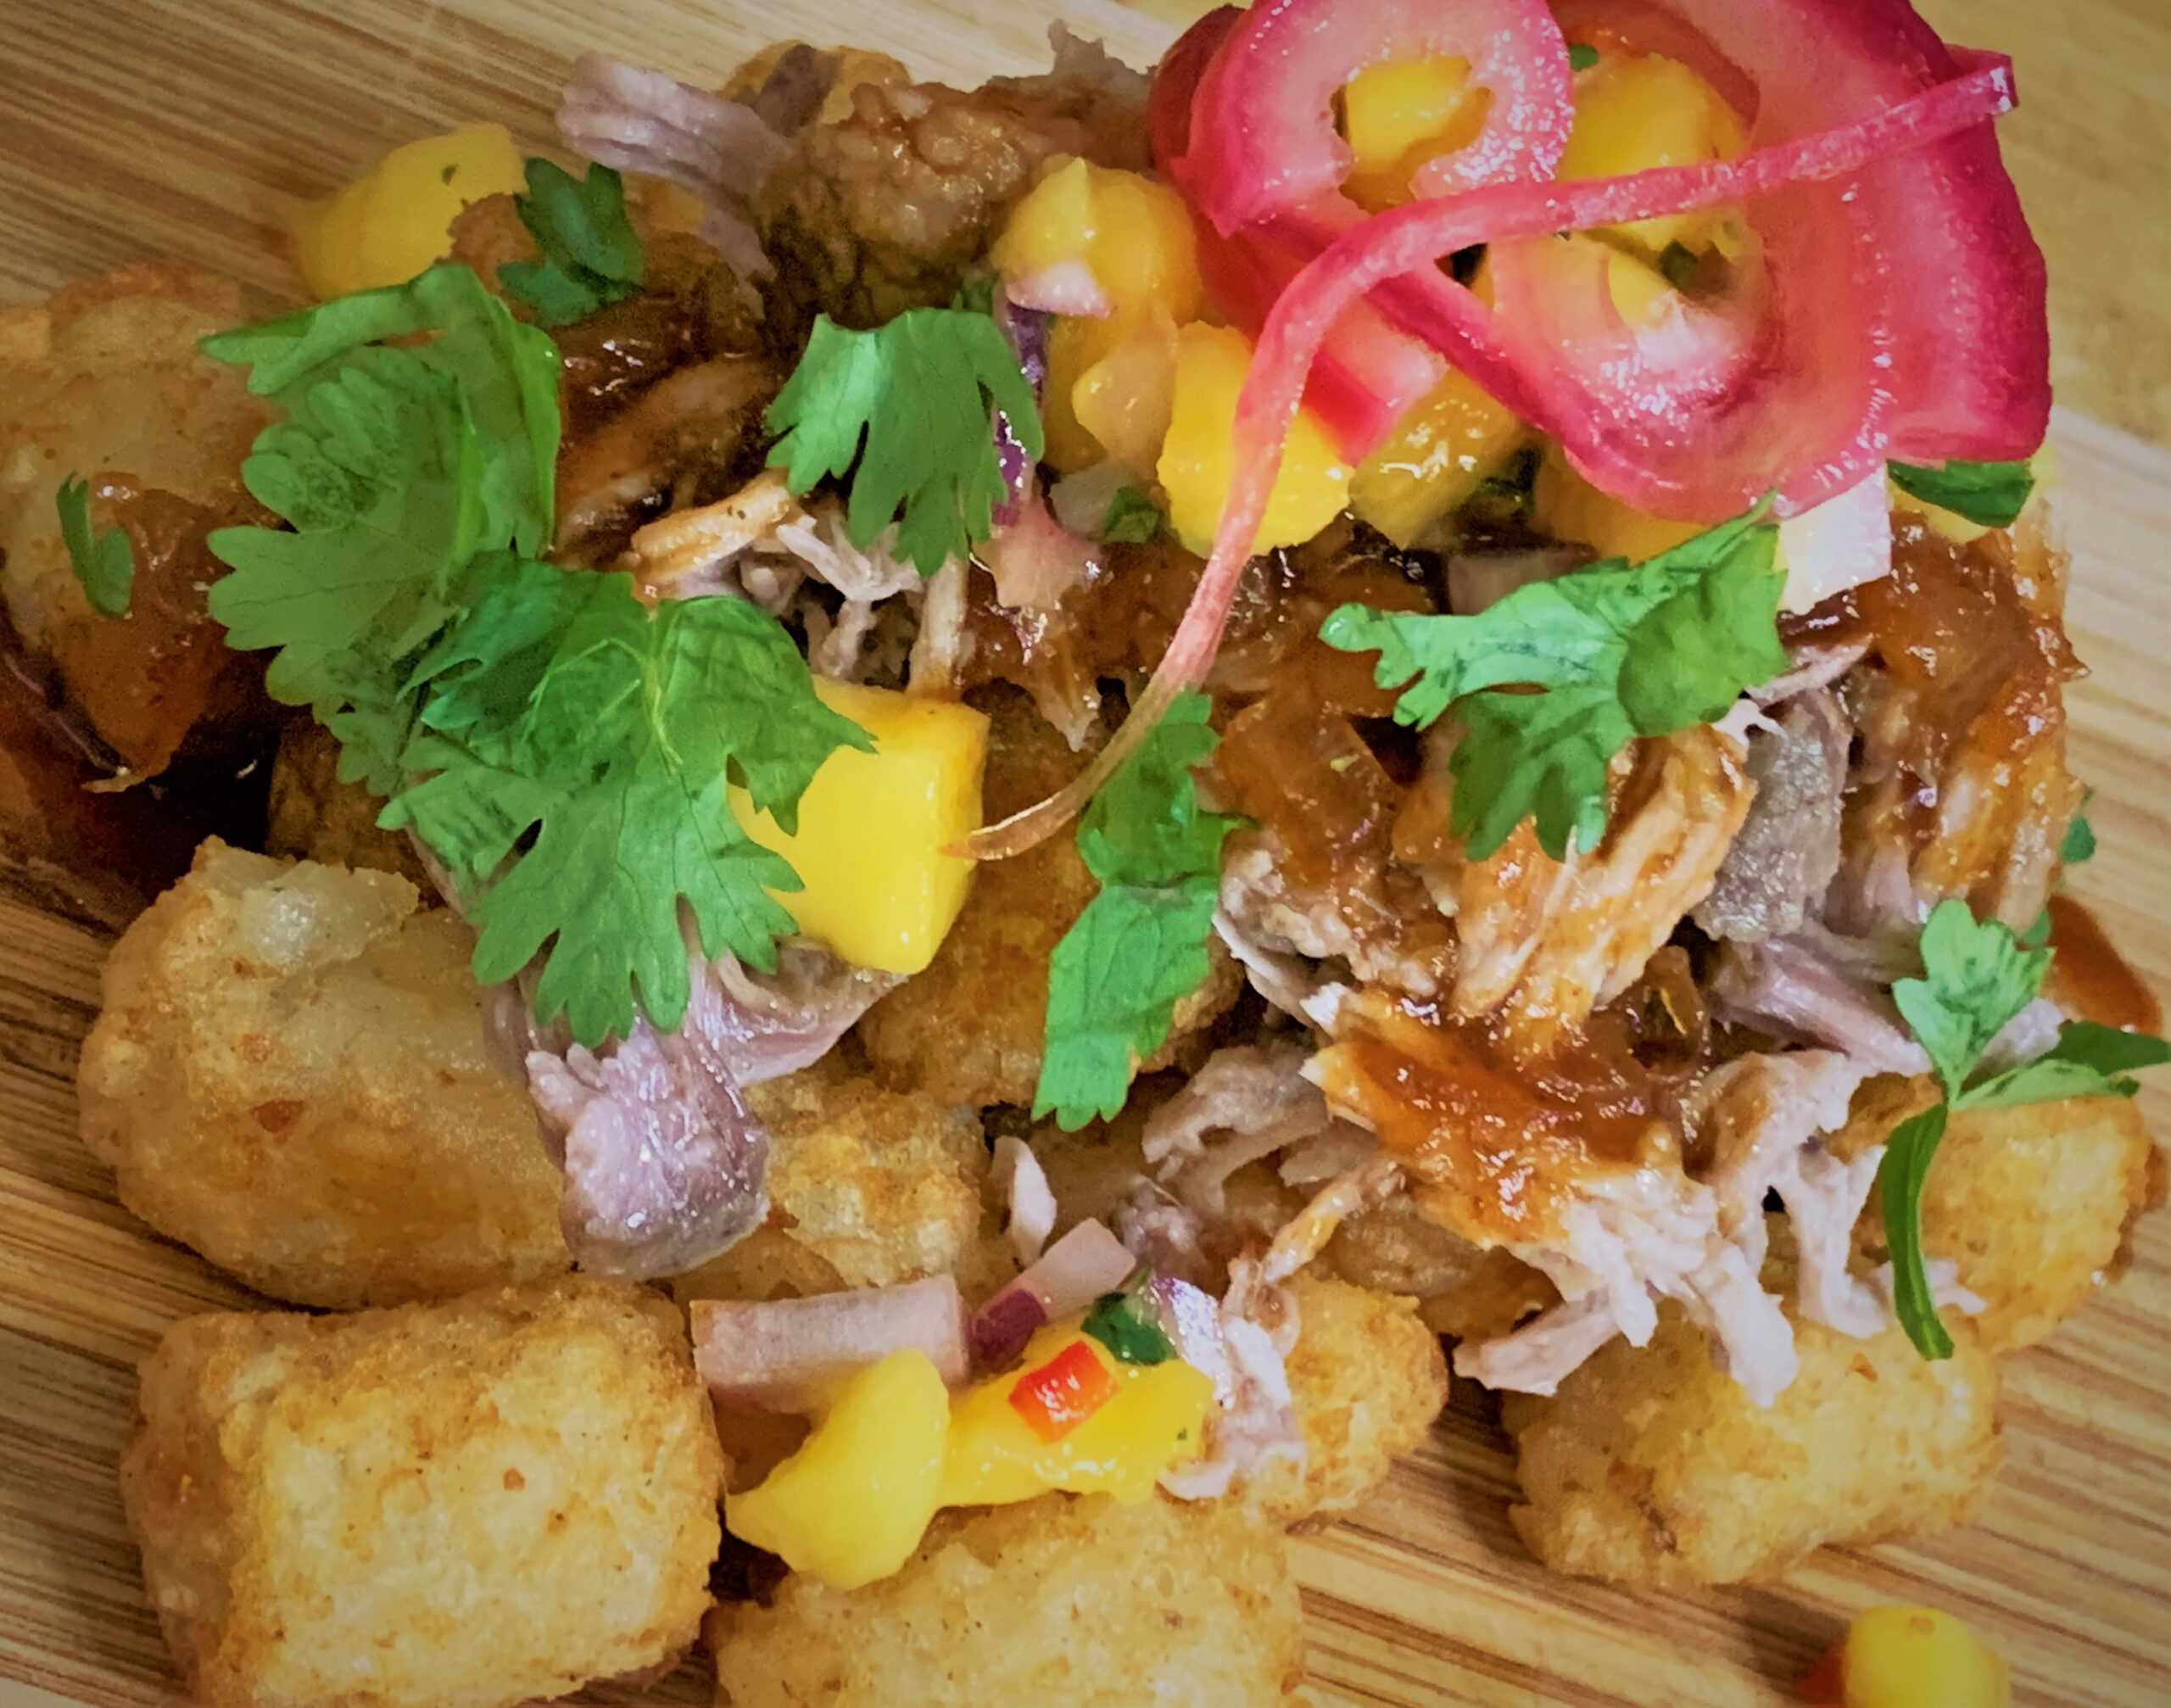 Our fuly plated Kalua-Style Pulled Pork Tots with Polynesian BBQ Sauce & Mango Salsa